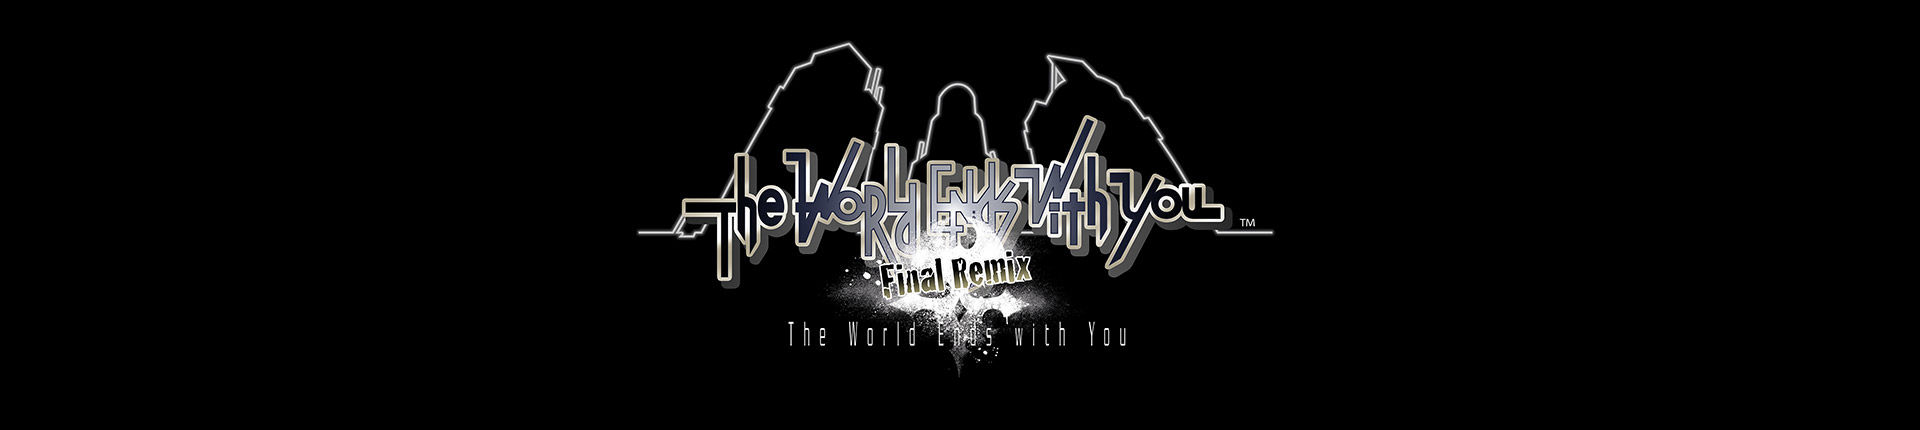 <a href='https://www.mightygamesmag.de/all-game-list/the-world-ends-with-you-final-remix/'>Zum Spiel</a>